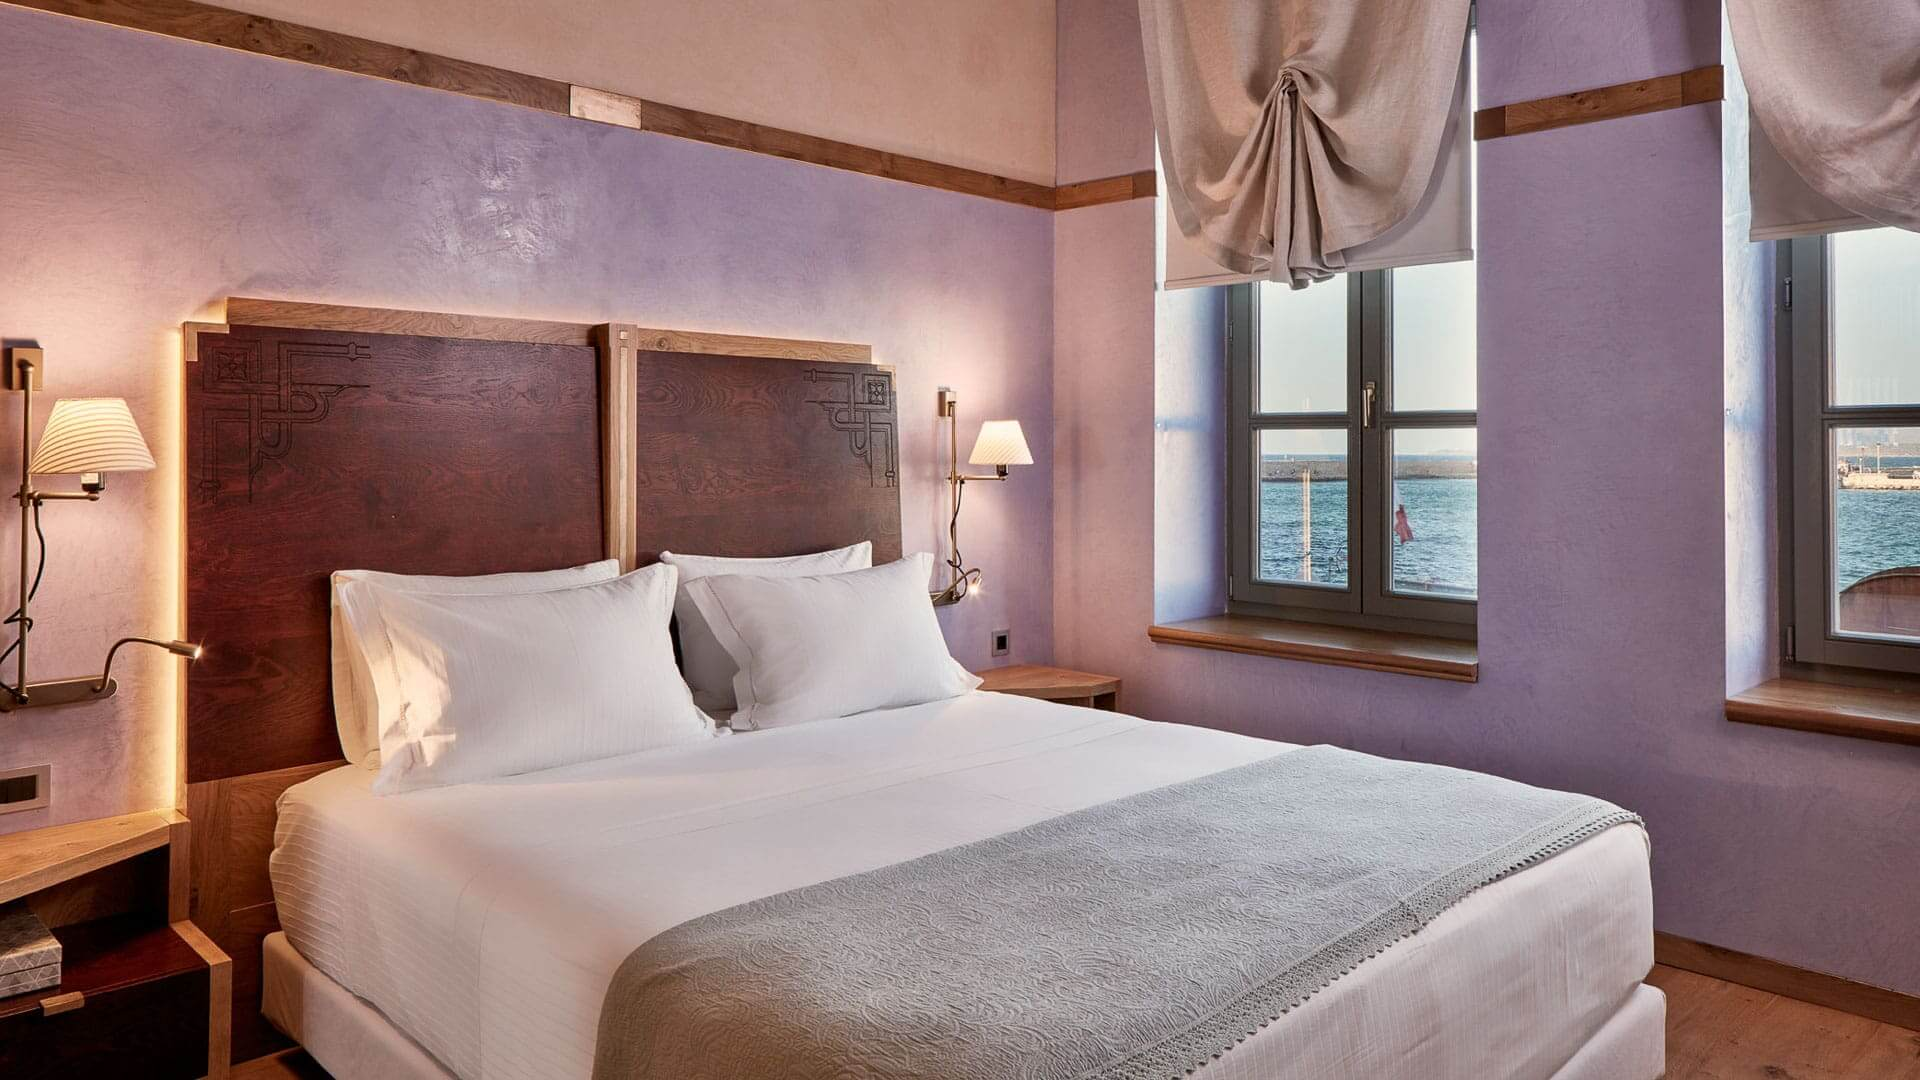 Queen size bed in one of the sea view rooms & suites at the Domus Renier Boutique Hotel Chania